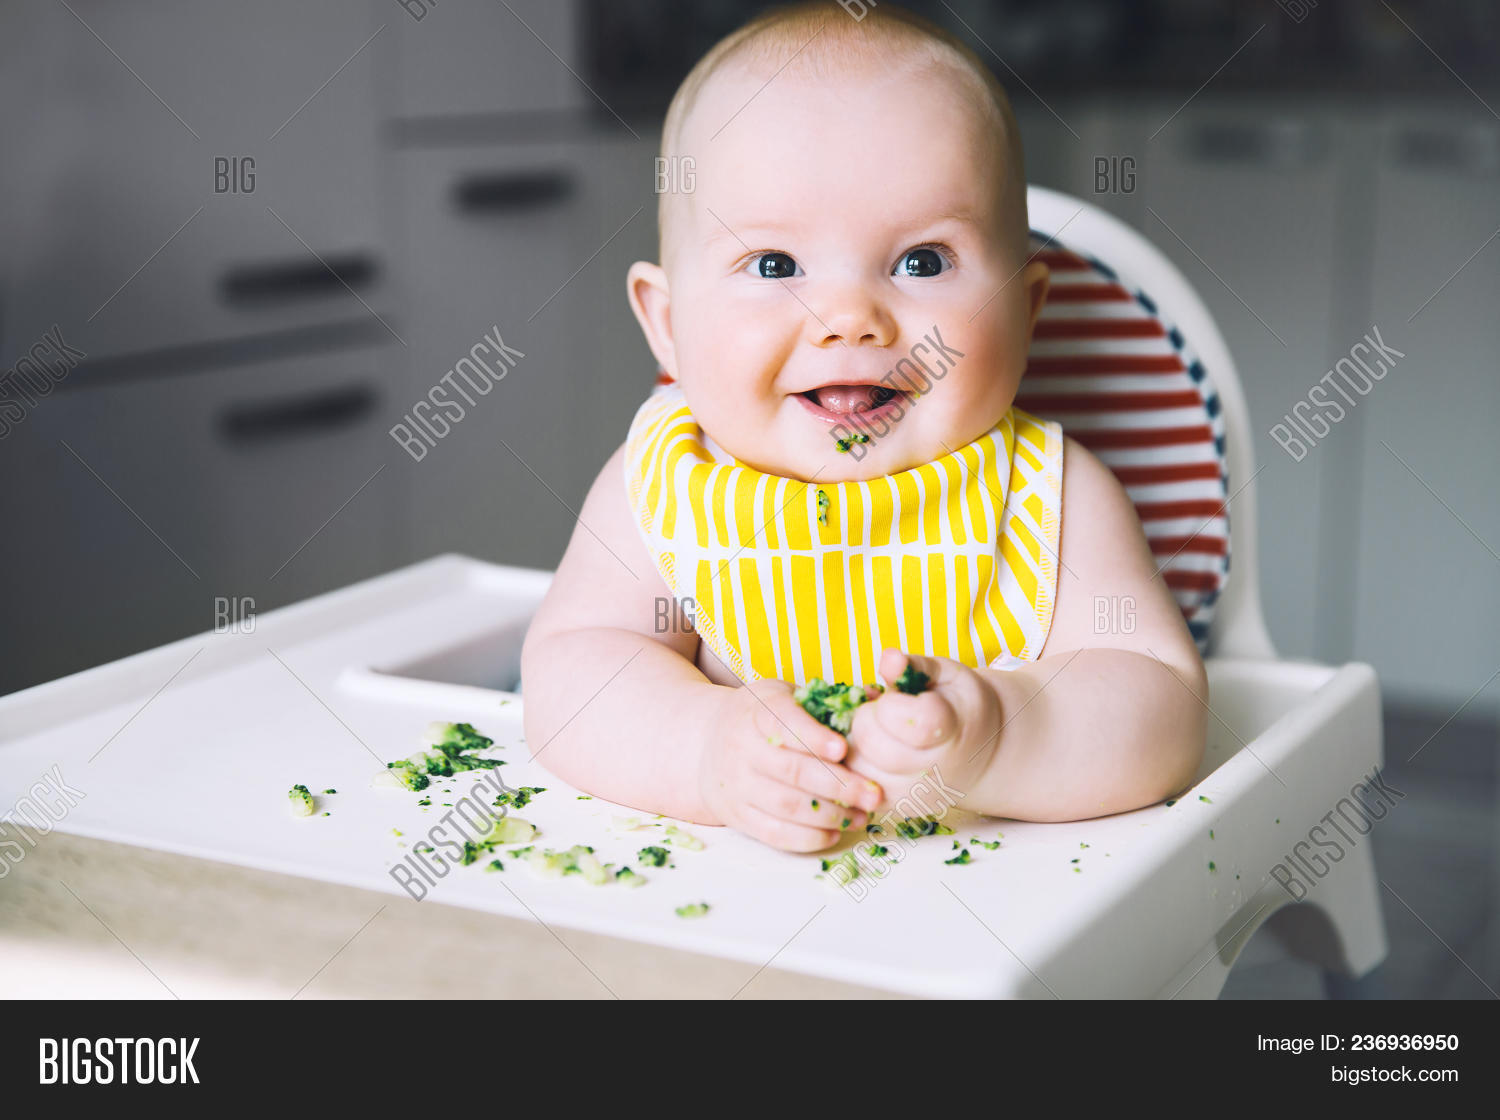 Baby,Bowl,Breakfast,Care,Chair,Chaos,Cheerful,Child,Dinner,Family,Food,Fruit,Healthy,Holding,Hungry,Indoors,Lunch,Making,Meal,Messy,Mother,Parent,Portrait,Pouring,Smiling,Solid,Spilling,Spoon,Table,Teaspoon,adorable,broccoli,chew,cutest,daily,eat,feed,first,happy,high,himself,kid,little,mush,nutrition,puree,refuses,taste,try,vegetables